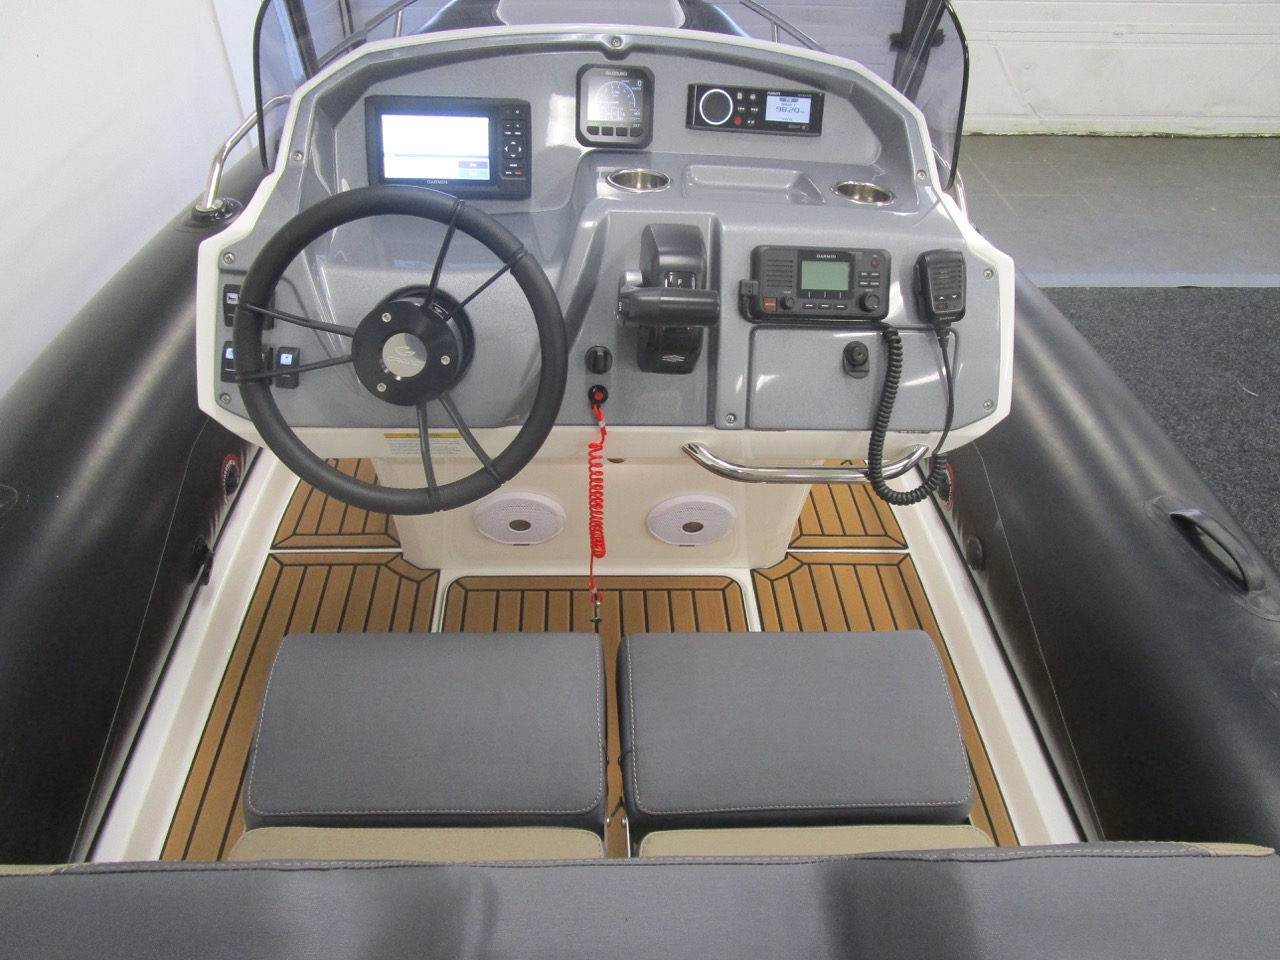 GRAND Golden Line G580 RIB helm seat and console